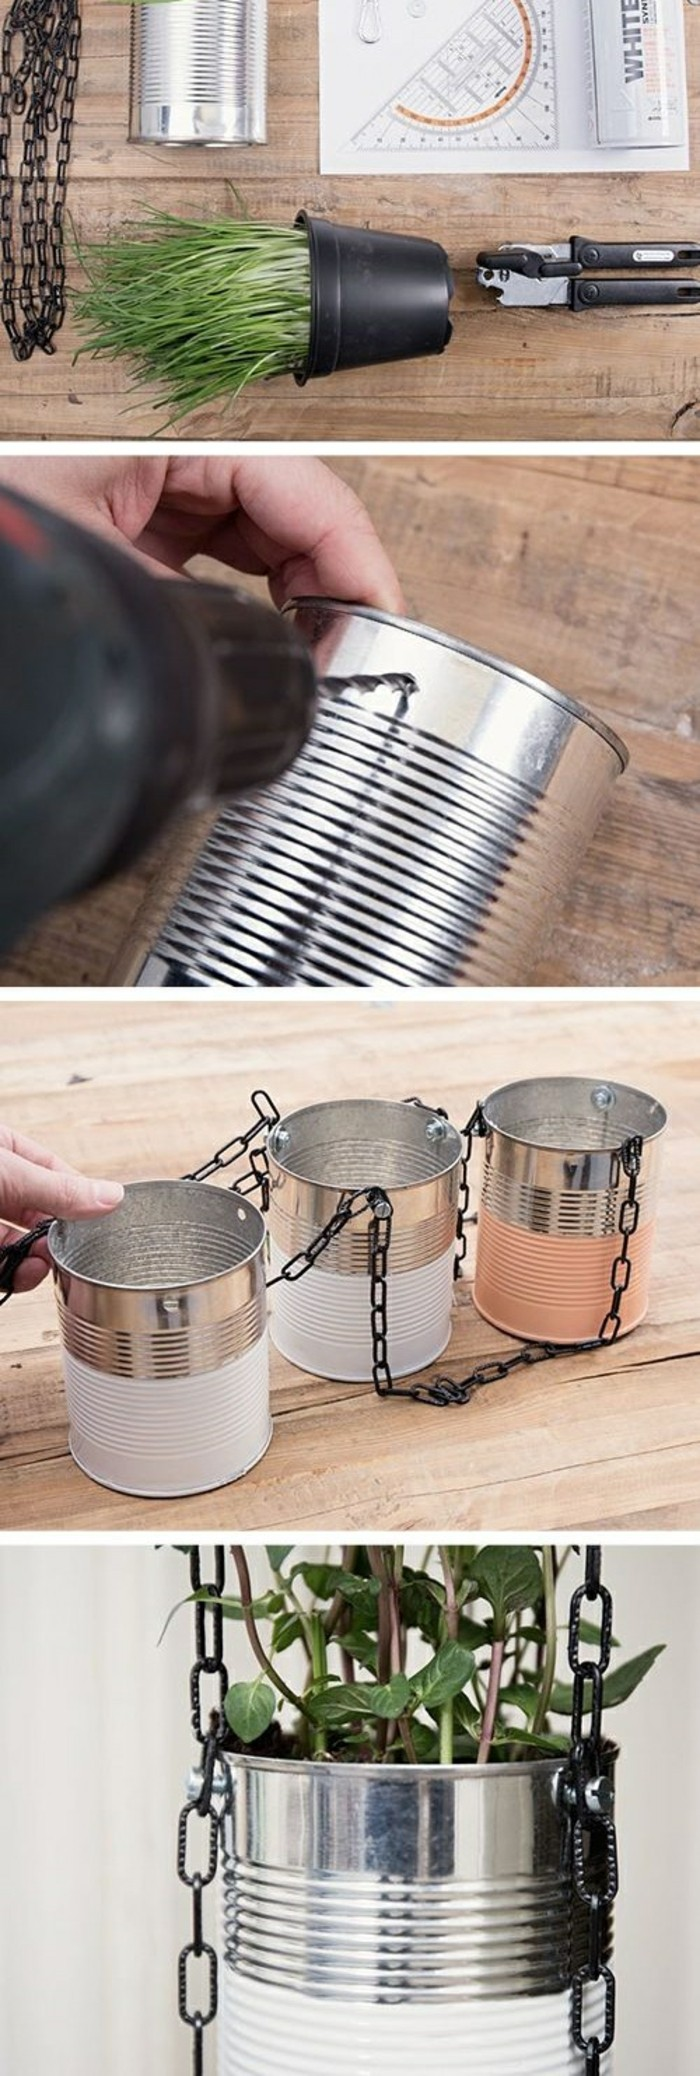 tin can crafts, aluminium can and green potted plant, black chain and ruler, near metal pliers, person making holes in can with drill, attaching three cans together with chain, close up of a can with plant inside